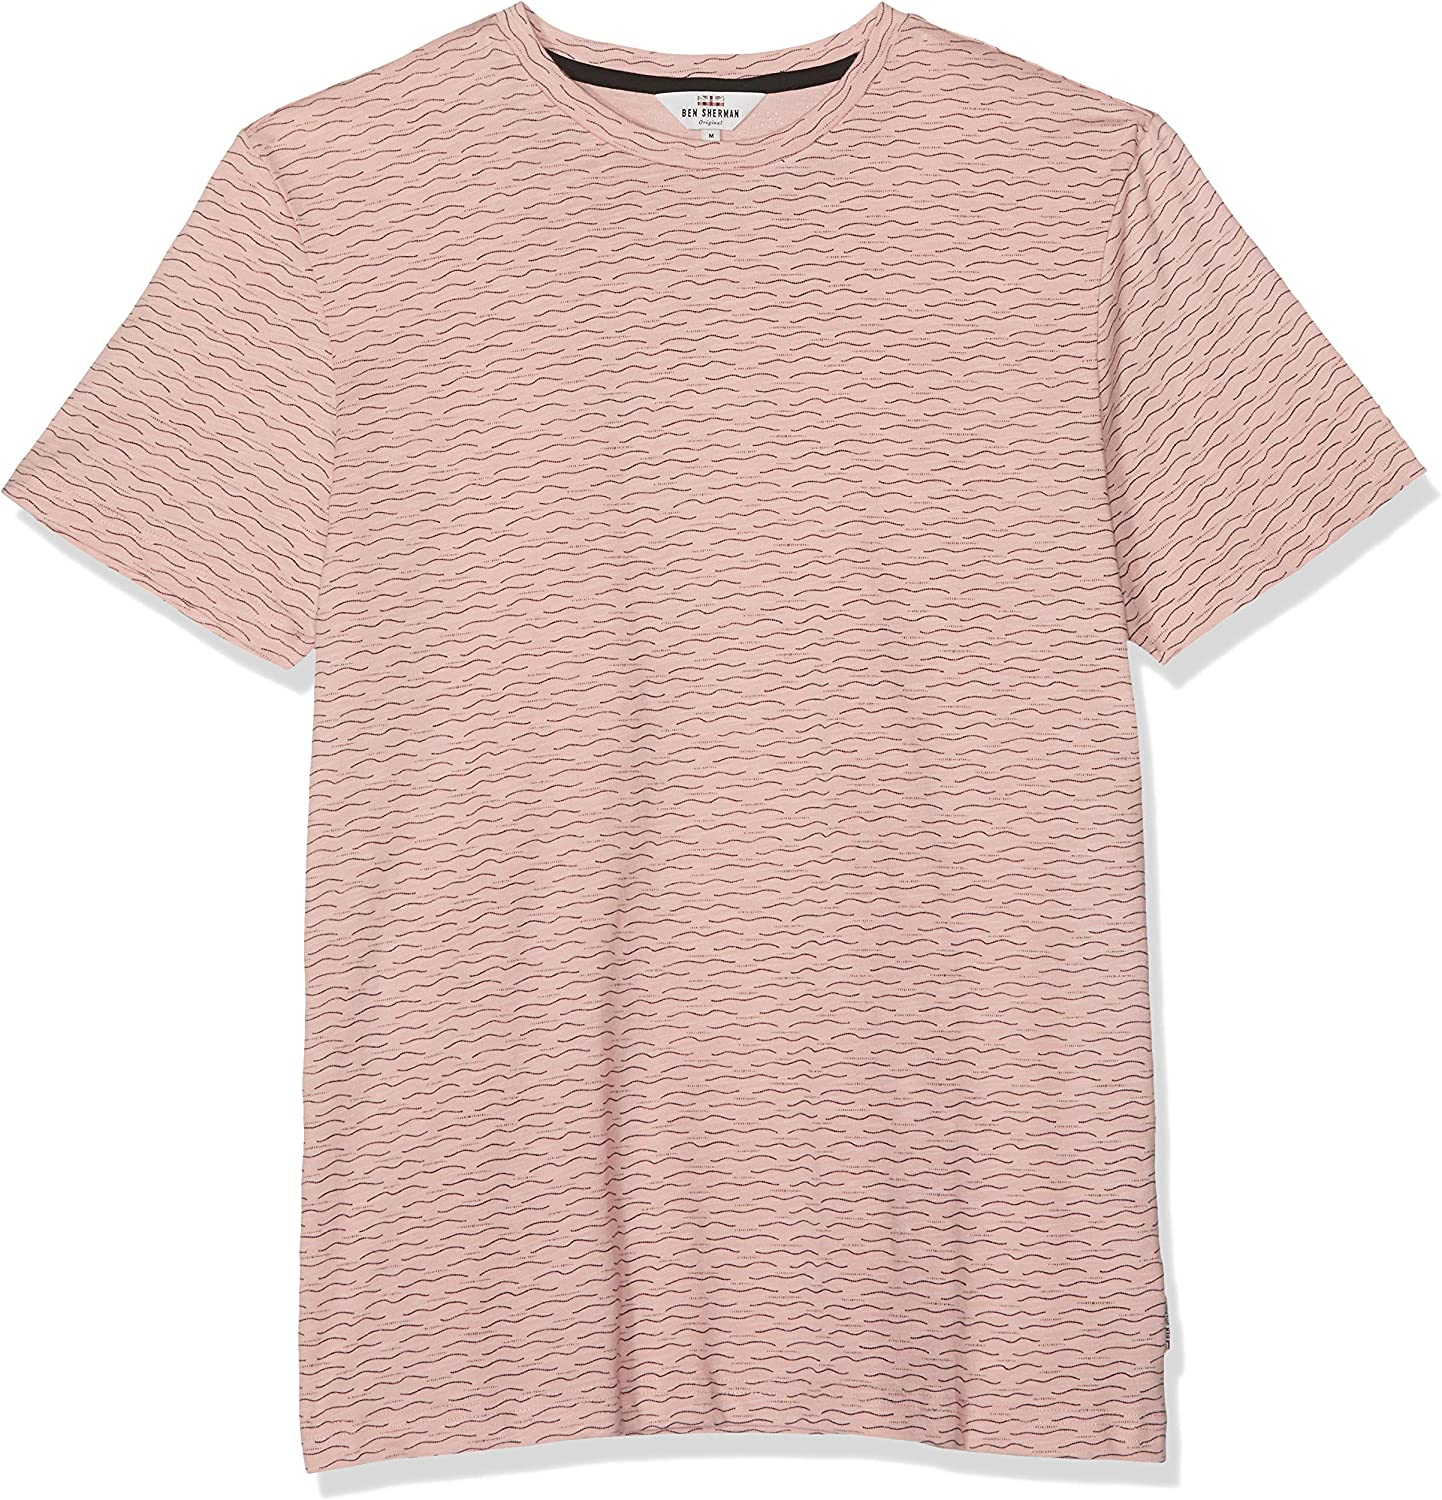 Ben Sherman Geo Wave Print tee Camiseta, Rosa (Light Pink), Medium para Hombre: Amazon.es: Ropa y accesorios